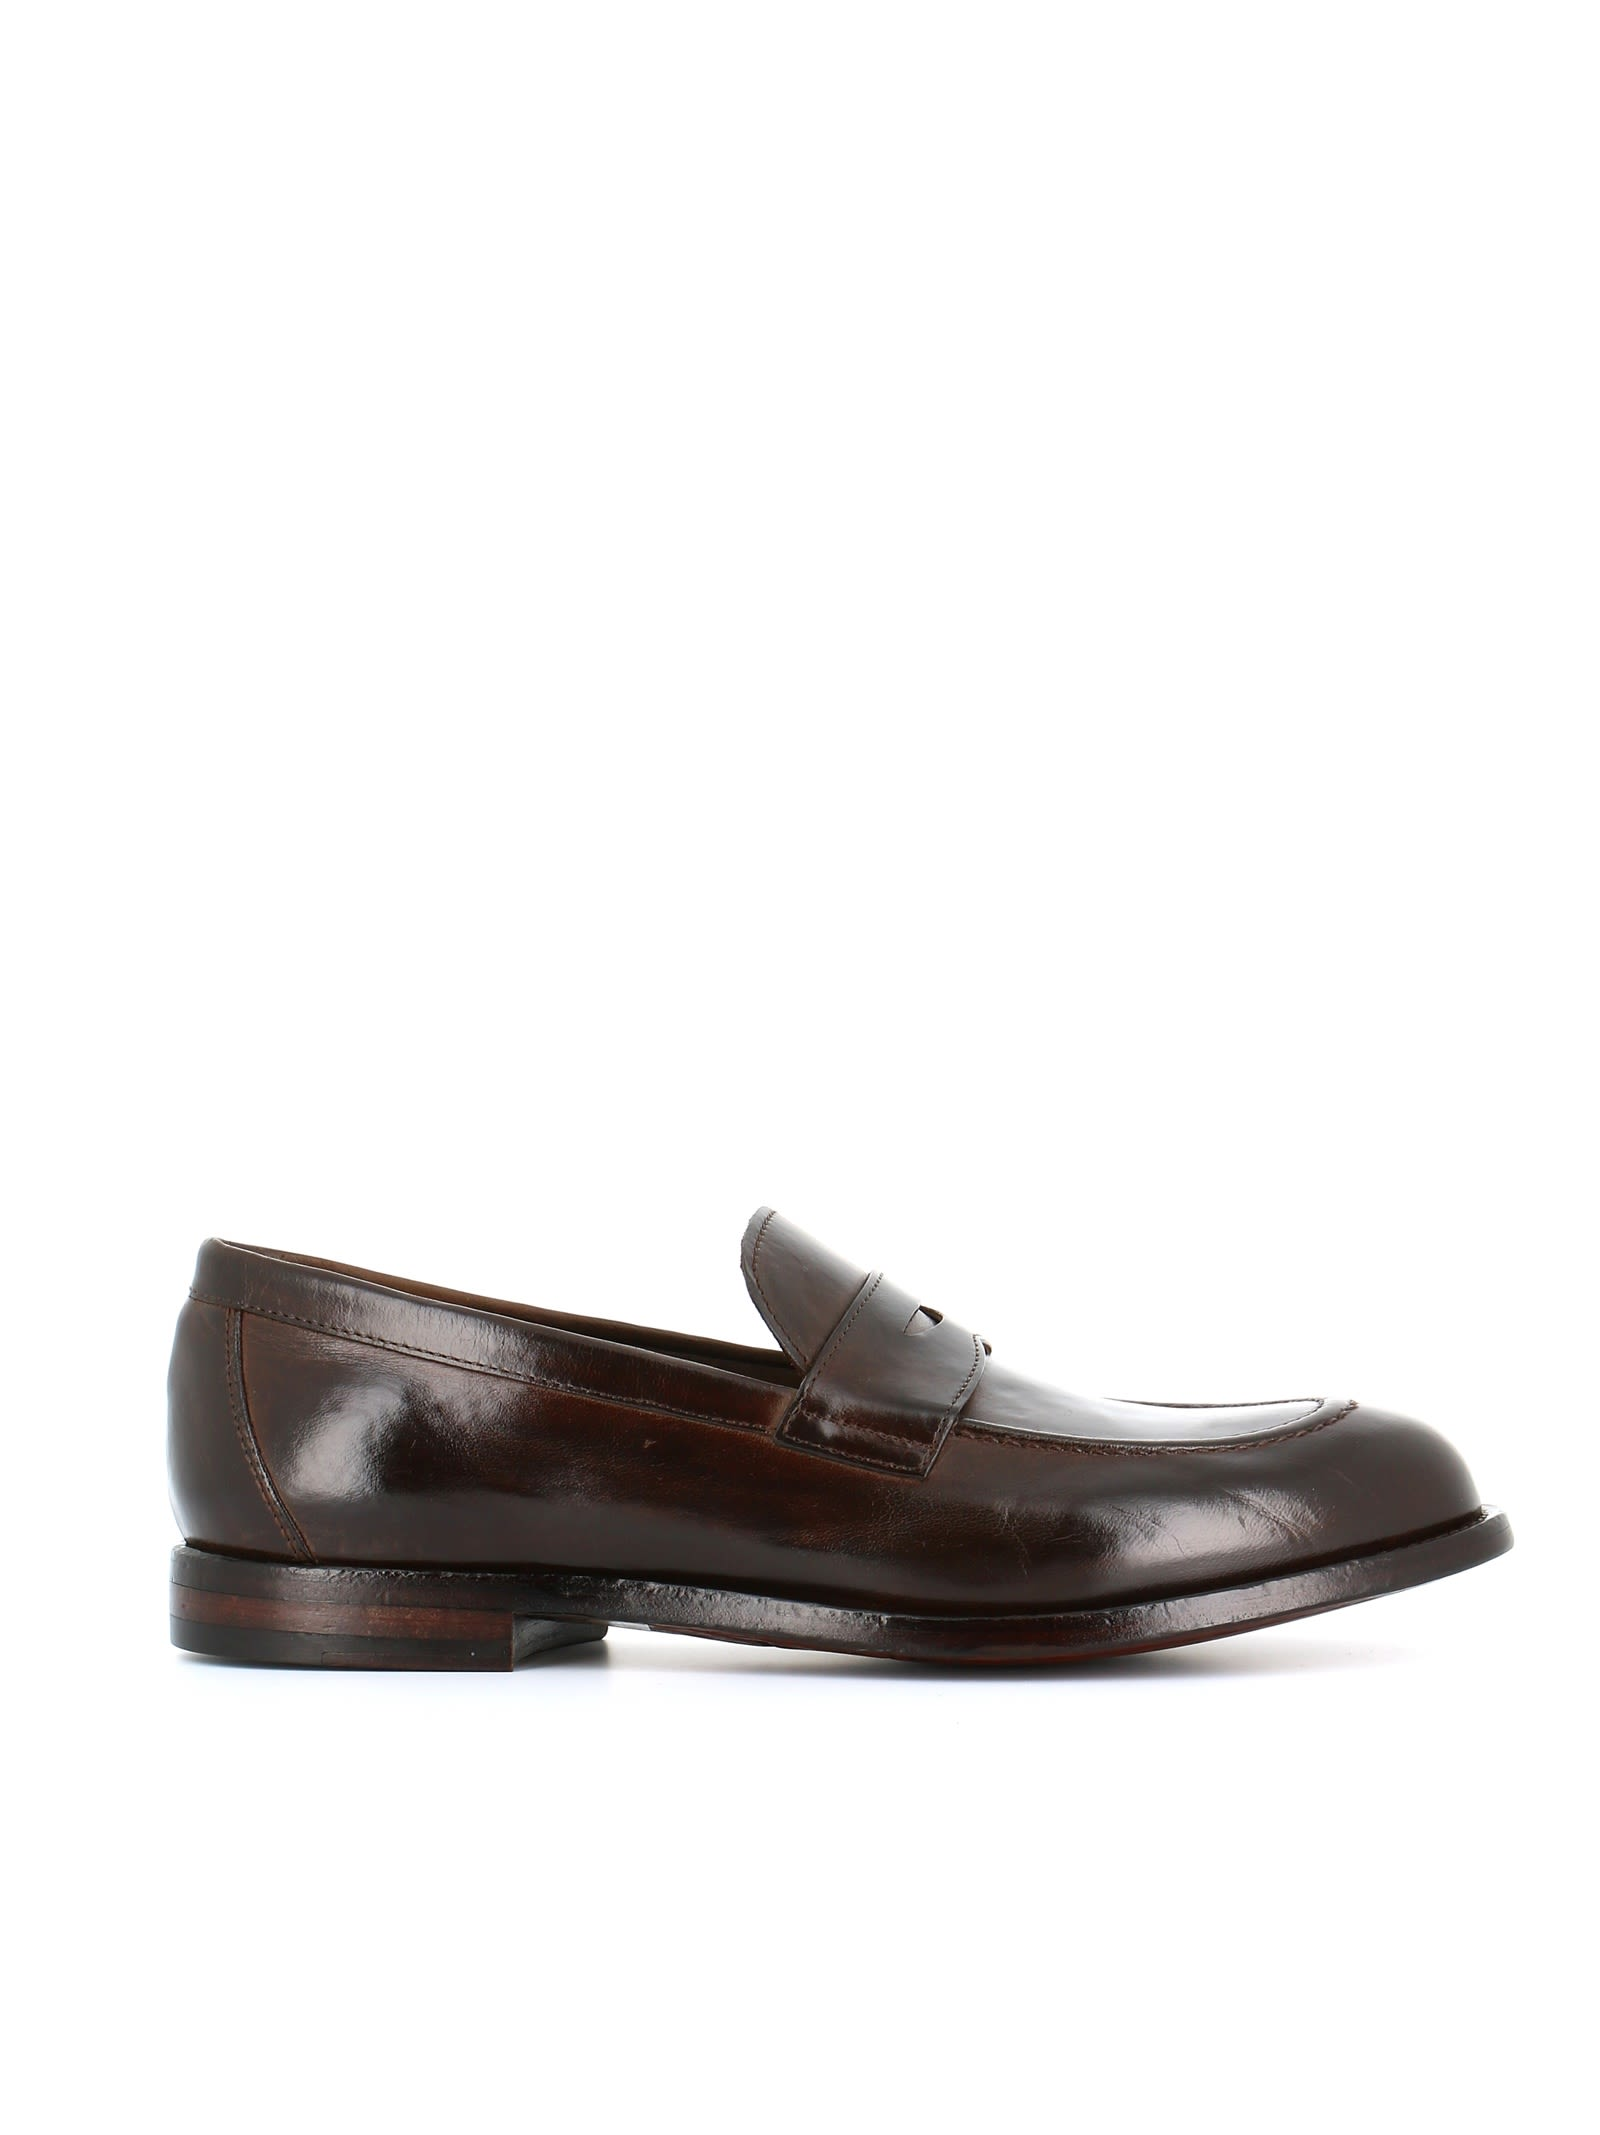 Ivy 002 loafers - Brown Officine Creative w4yKz1